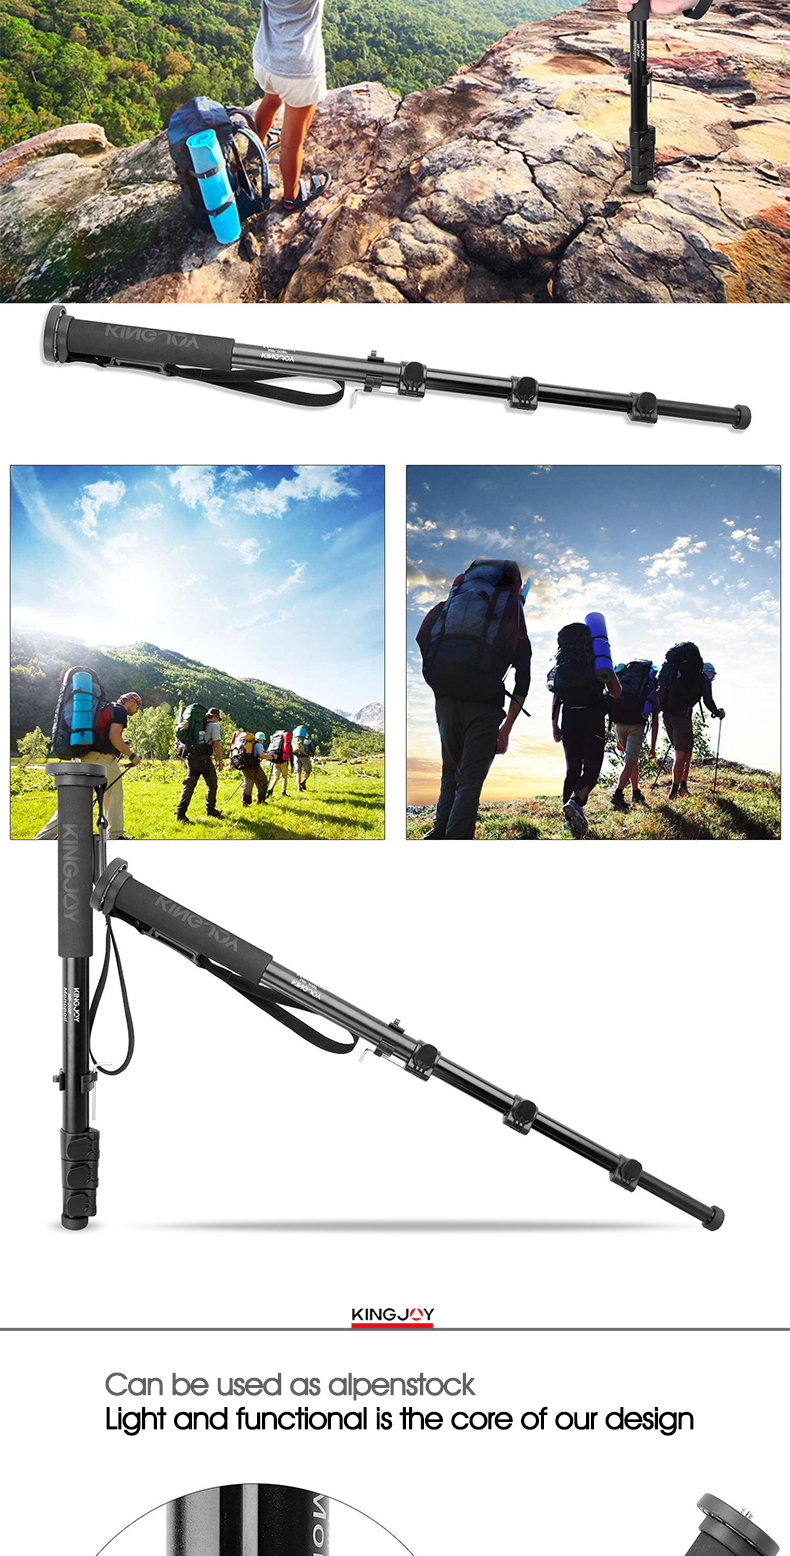 Kingjoy professional free standing aluminum camera monopod for photography